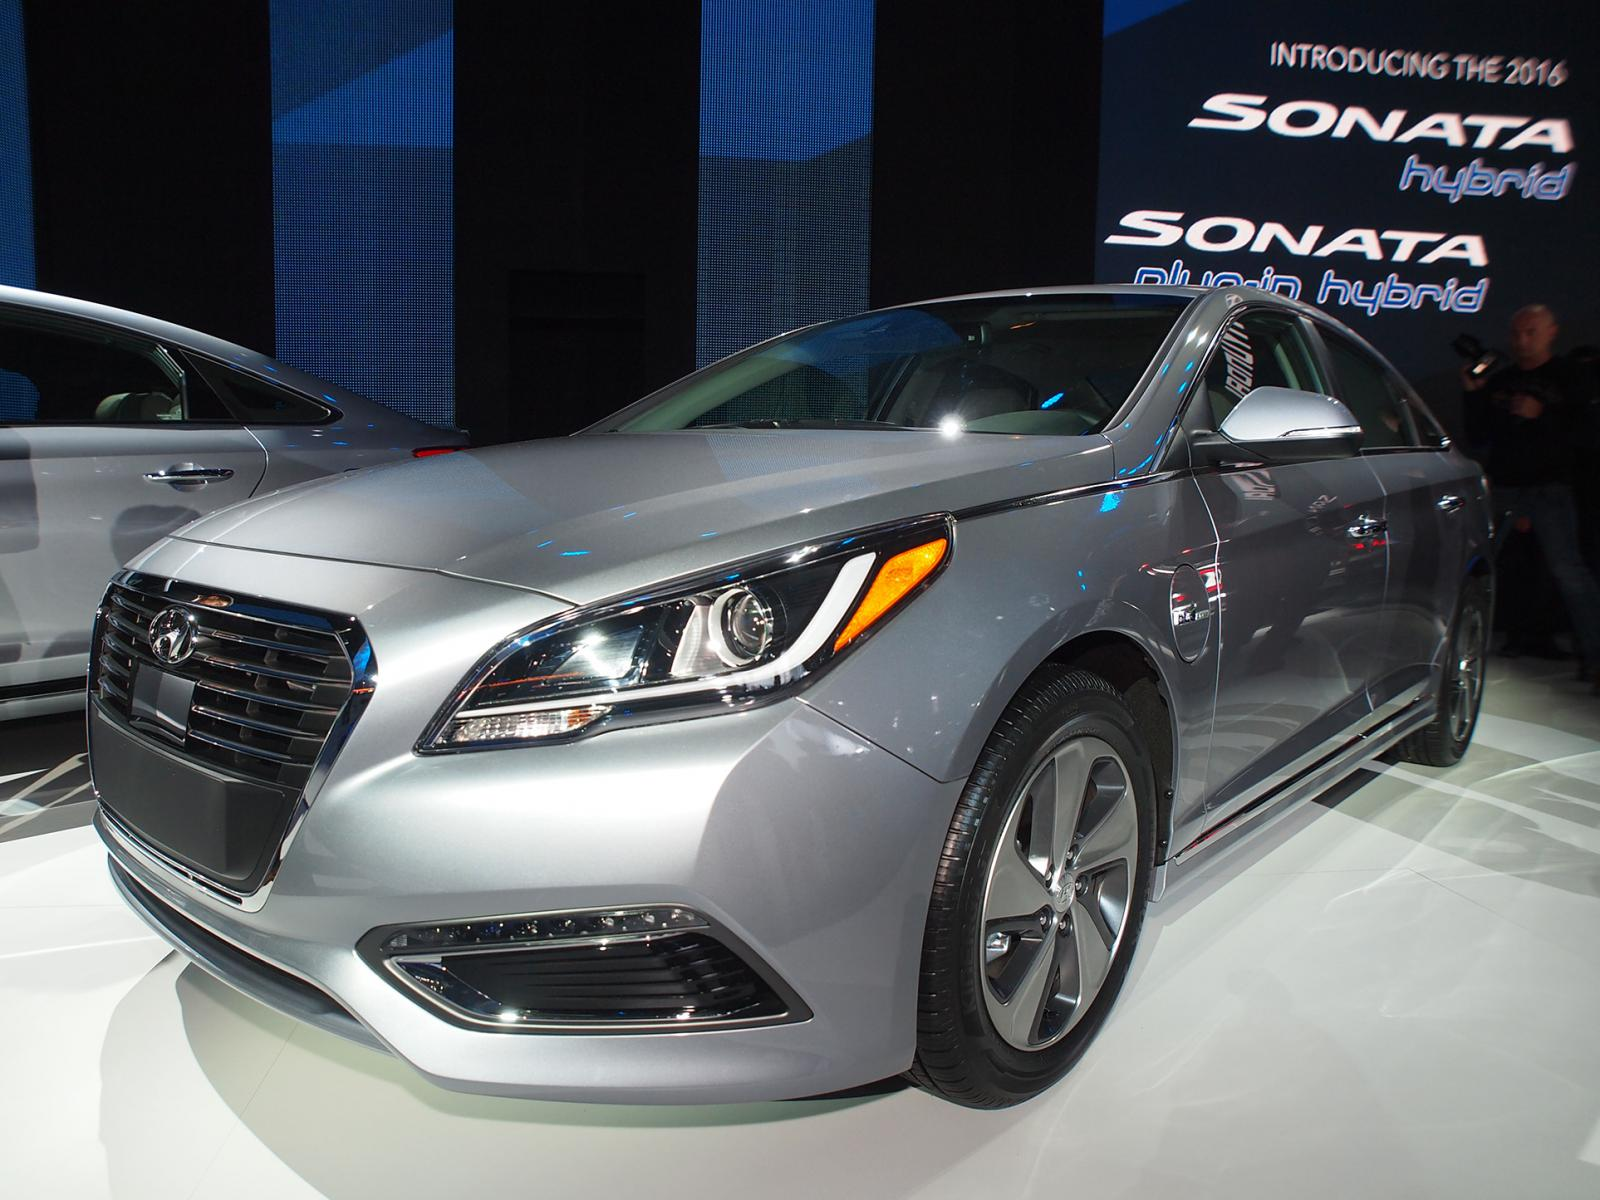 2016 HYUNDAI SONATA PLUGIN HYBRID EXPECTED TO DELIVER CLASSLEADING